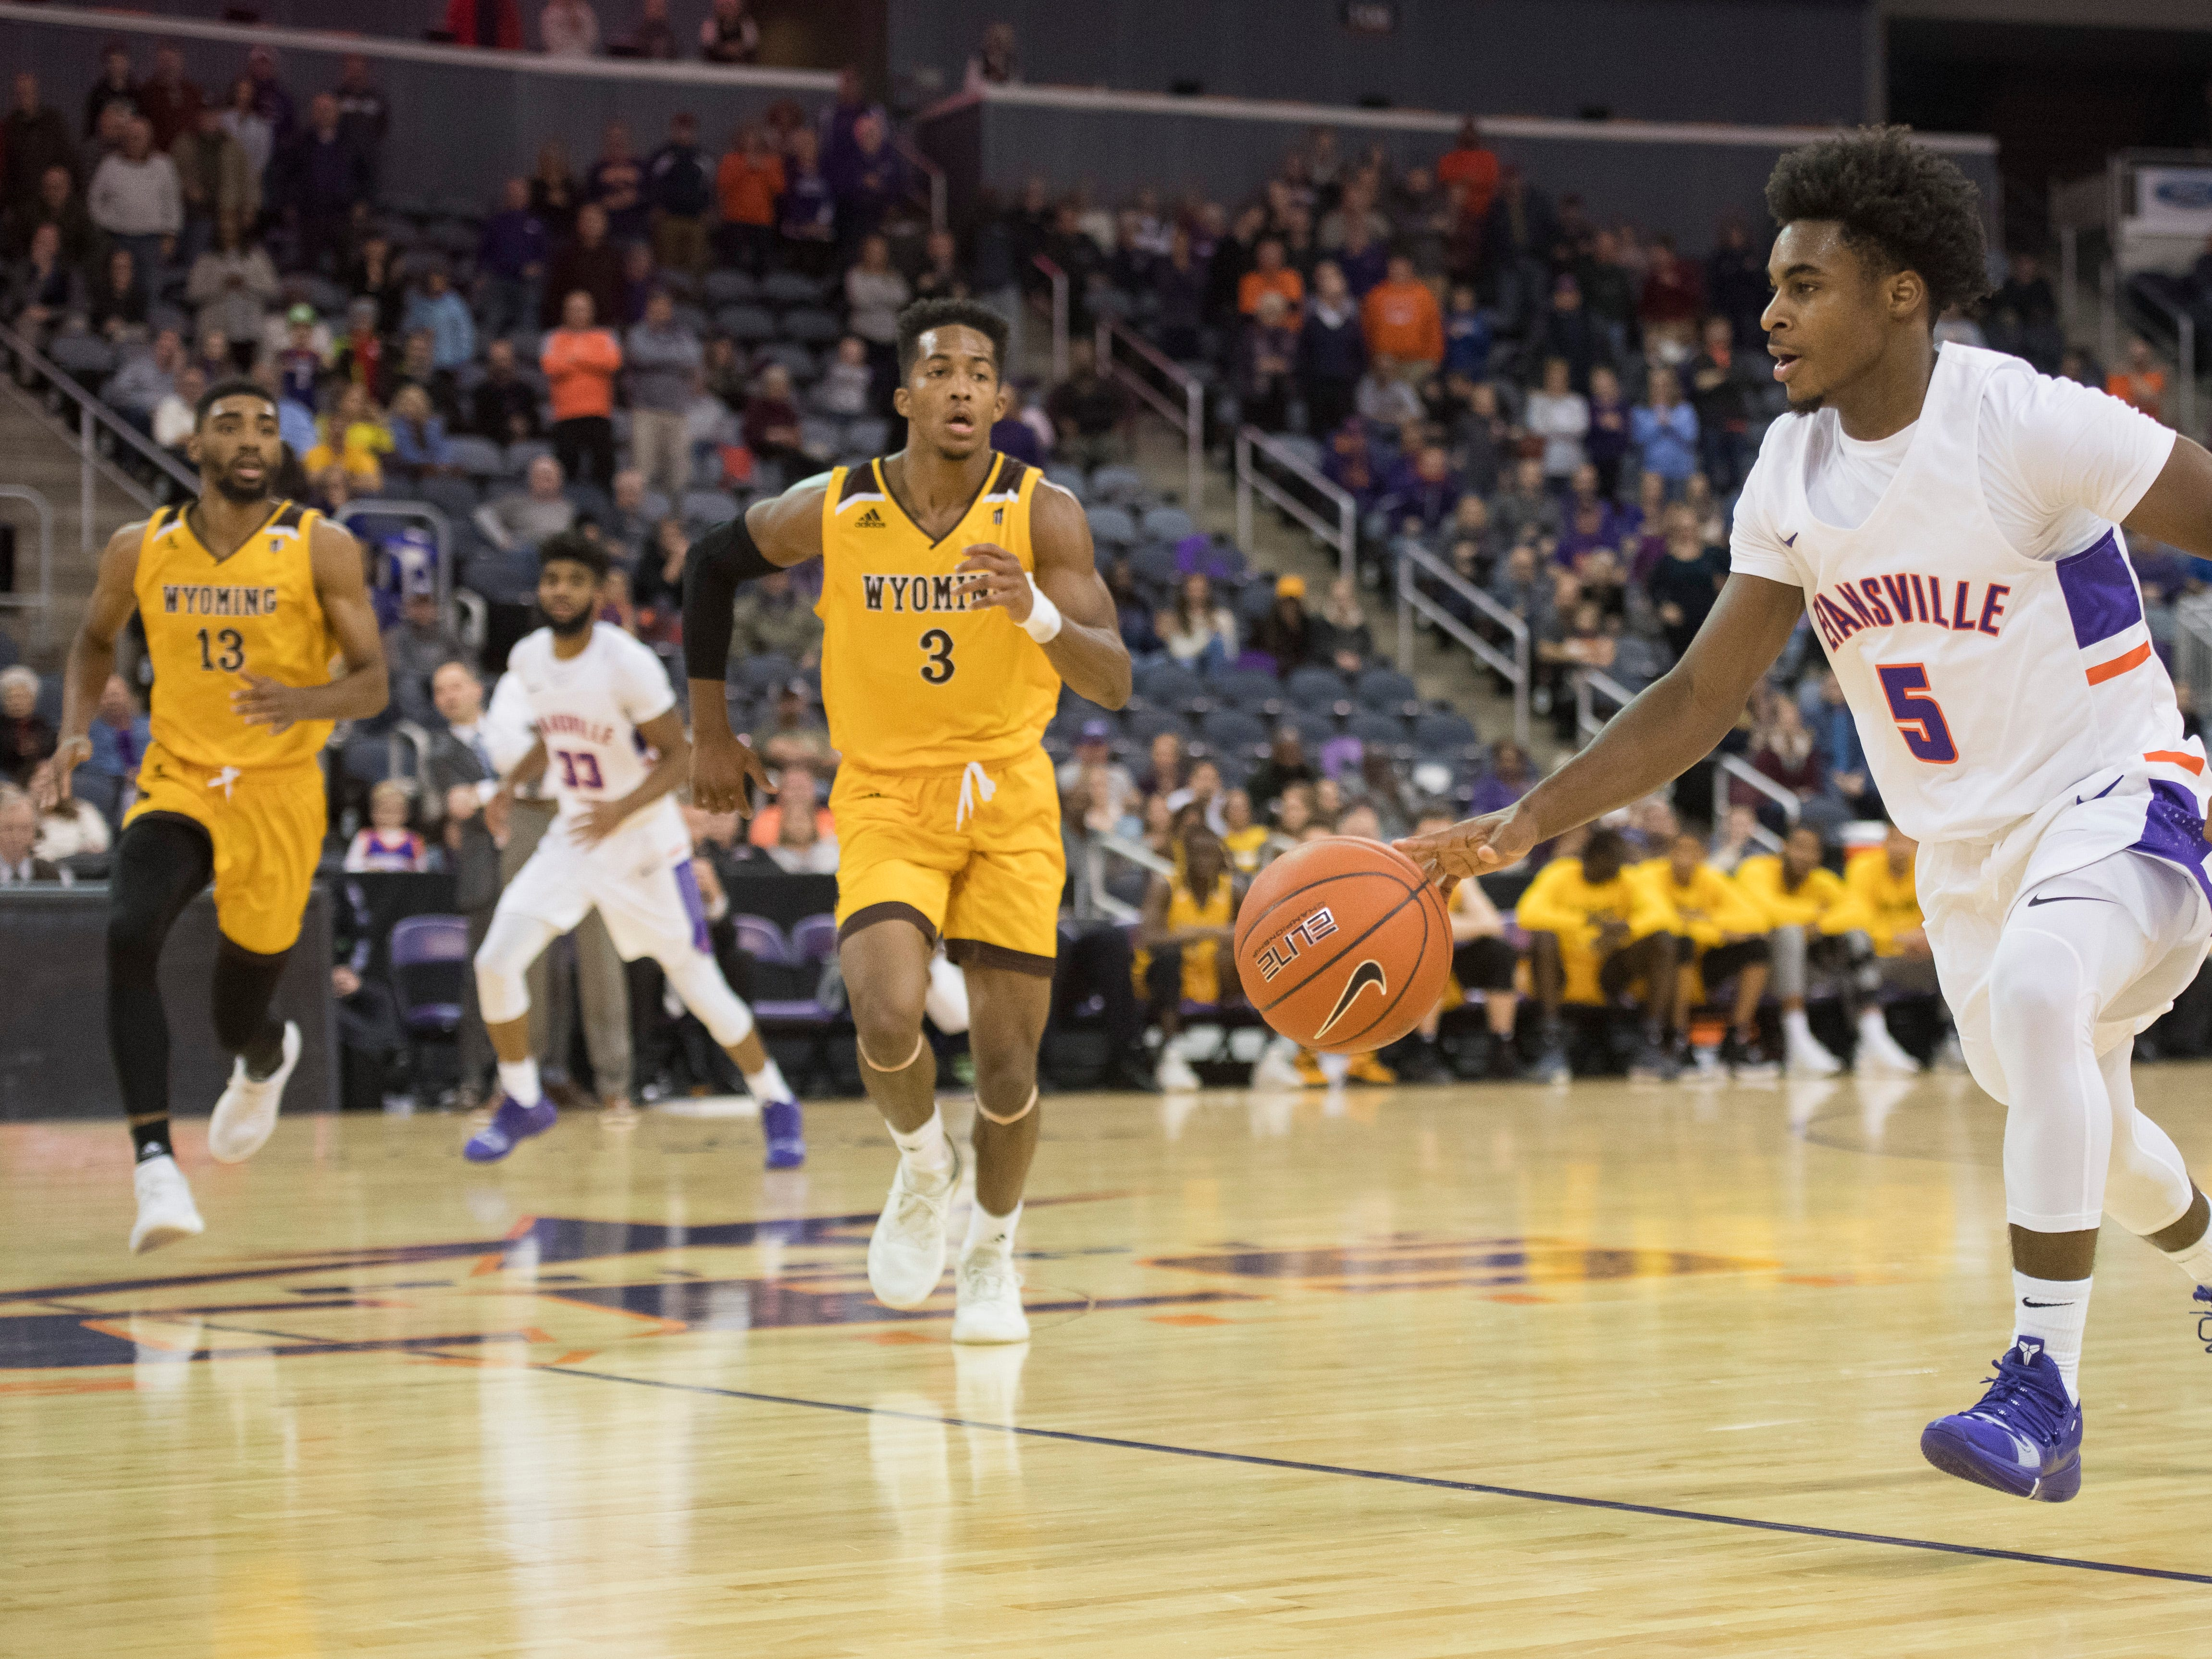 UE's Shamar Givance (5) dribbles the ball up court during the UE vs Wyoming game at the Ford Center Wednesday, Nov. 28, 2018. UE won 86-76.